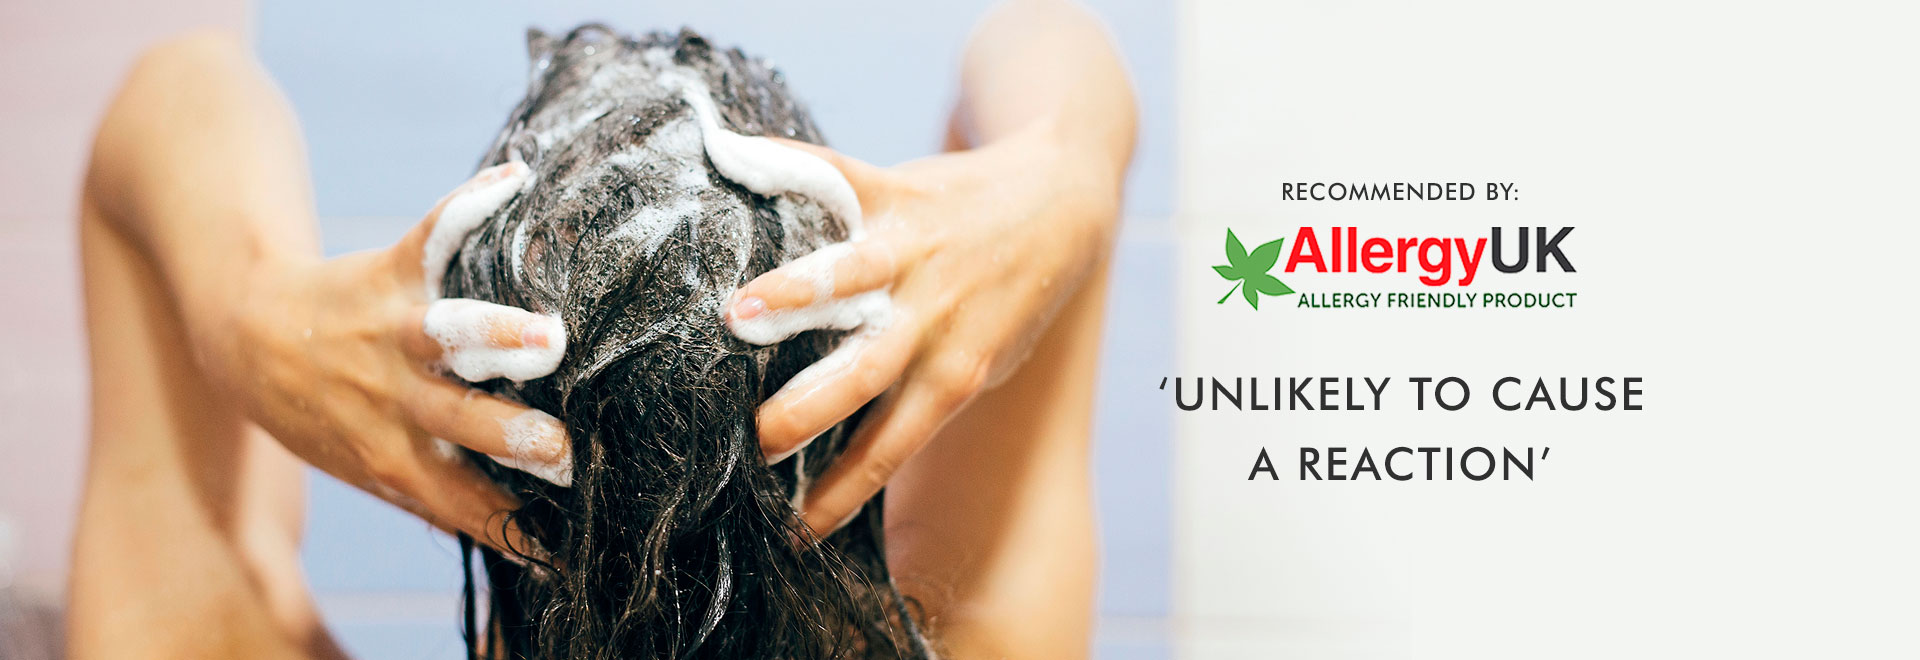 Allergy UK Recommended Haircare - Unlikely to Cause a Reaction